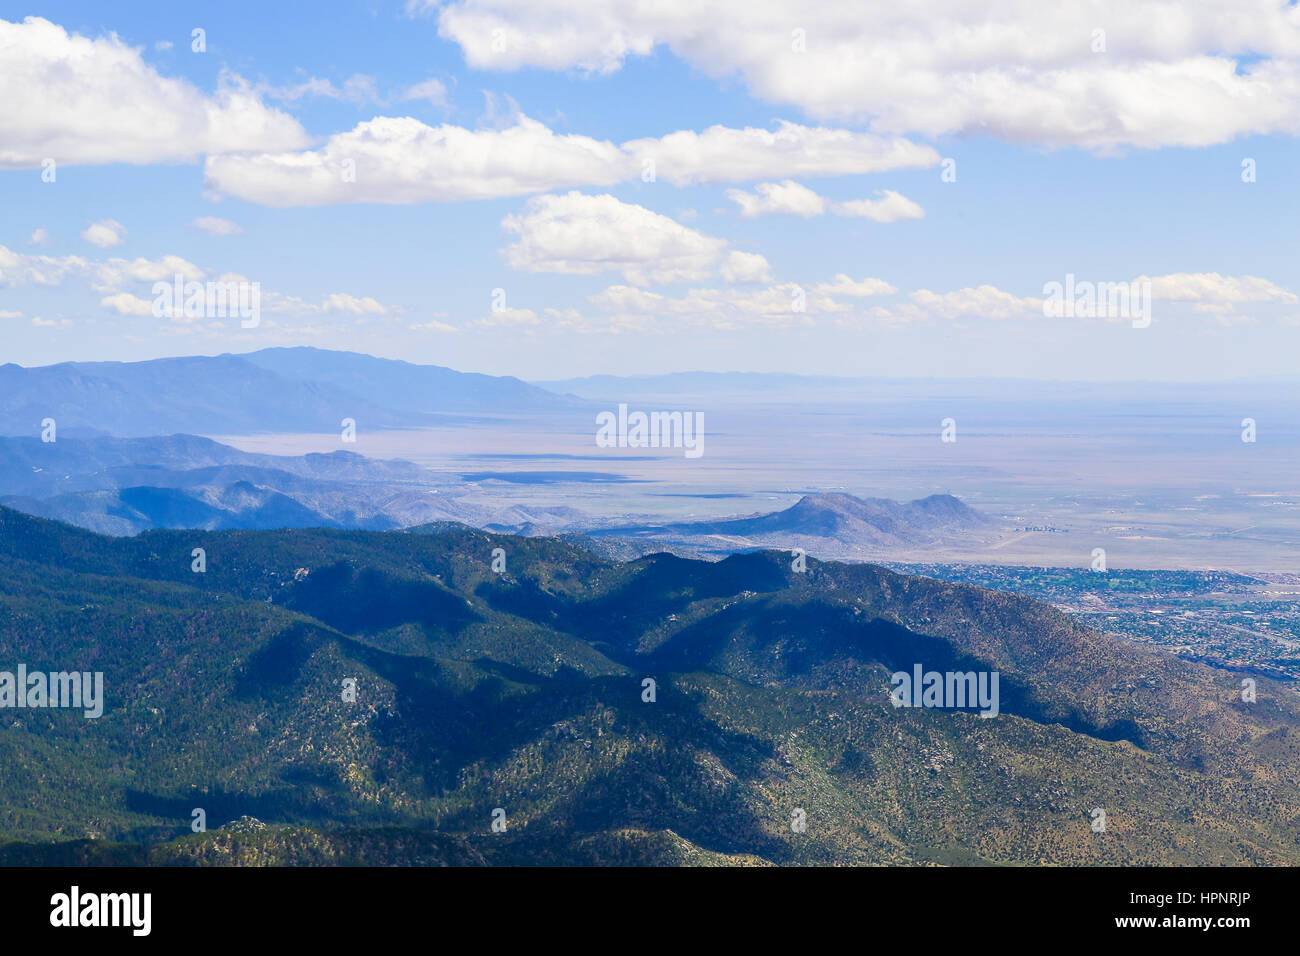 View over the Sandia Mountains and part of Albuquerque, USA, from Sandia Crest. Stock Photo